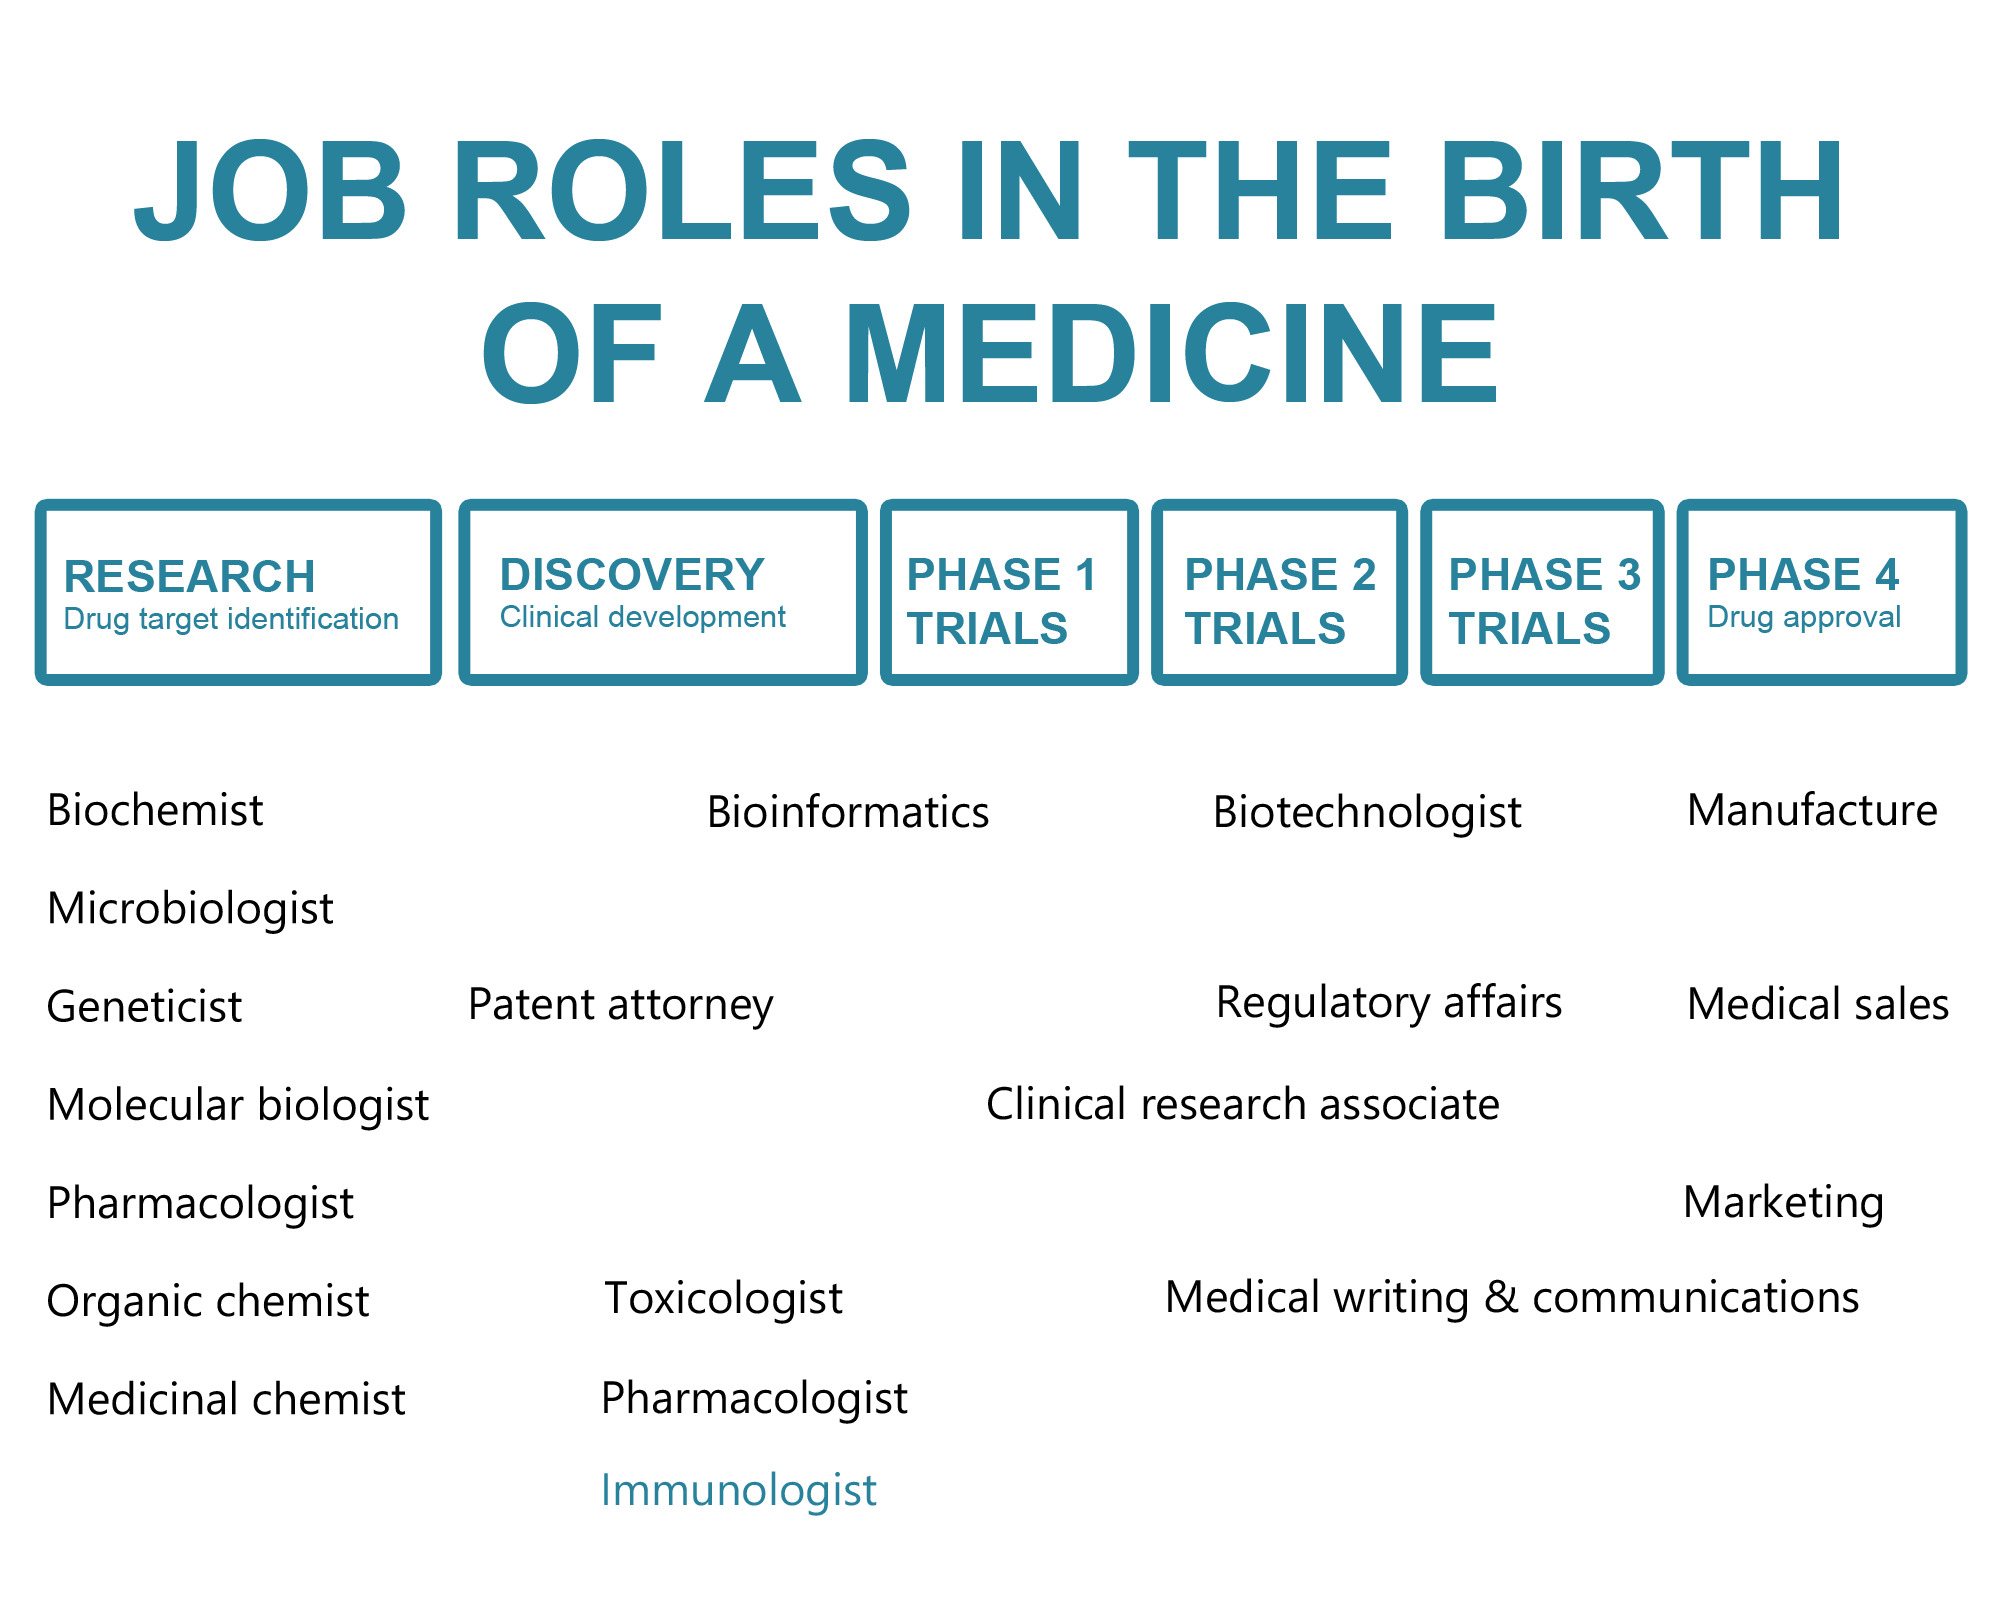 Job roles in the birth of a medicine diagram